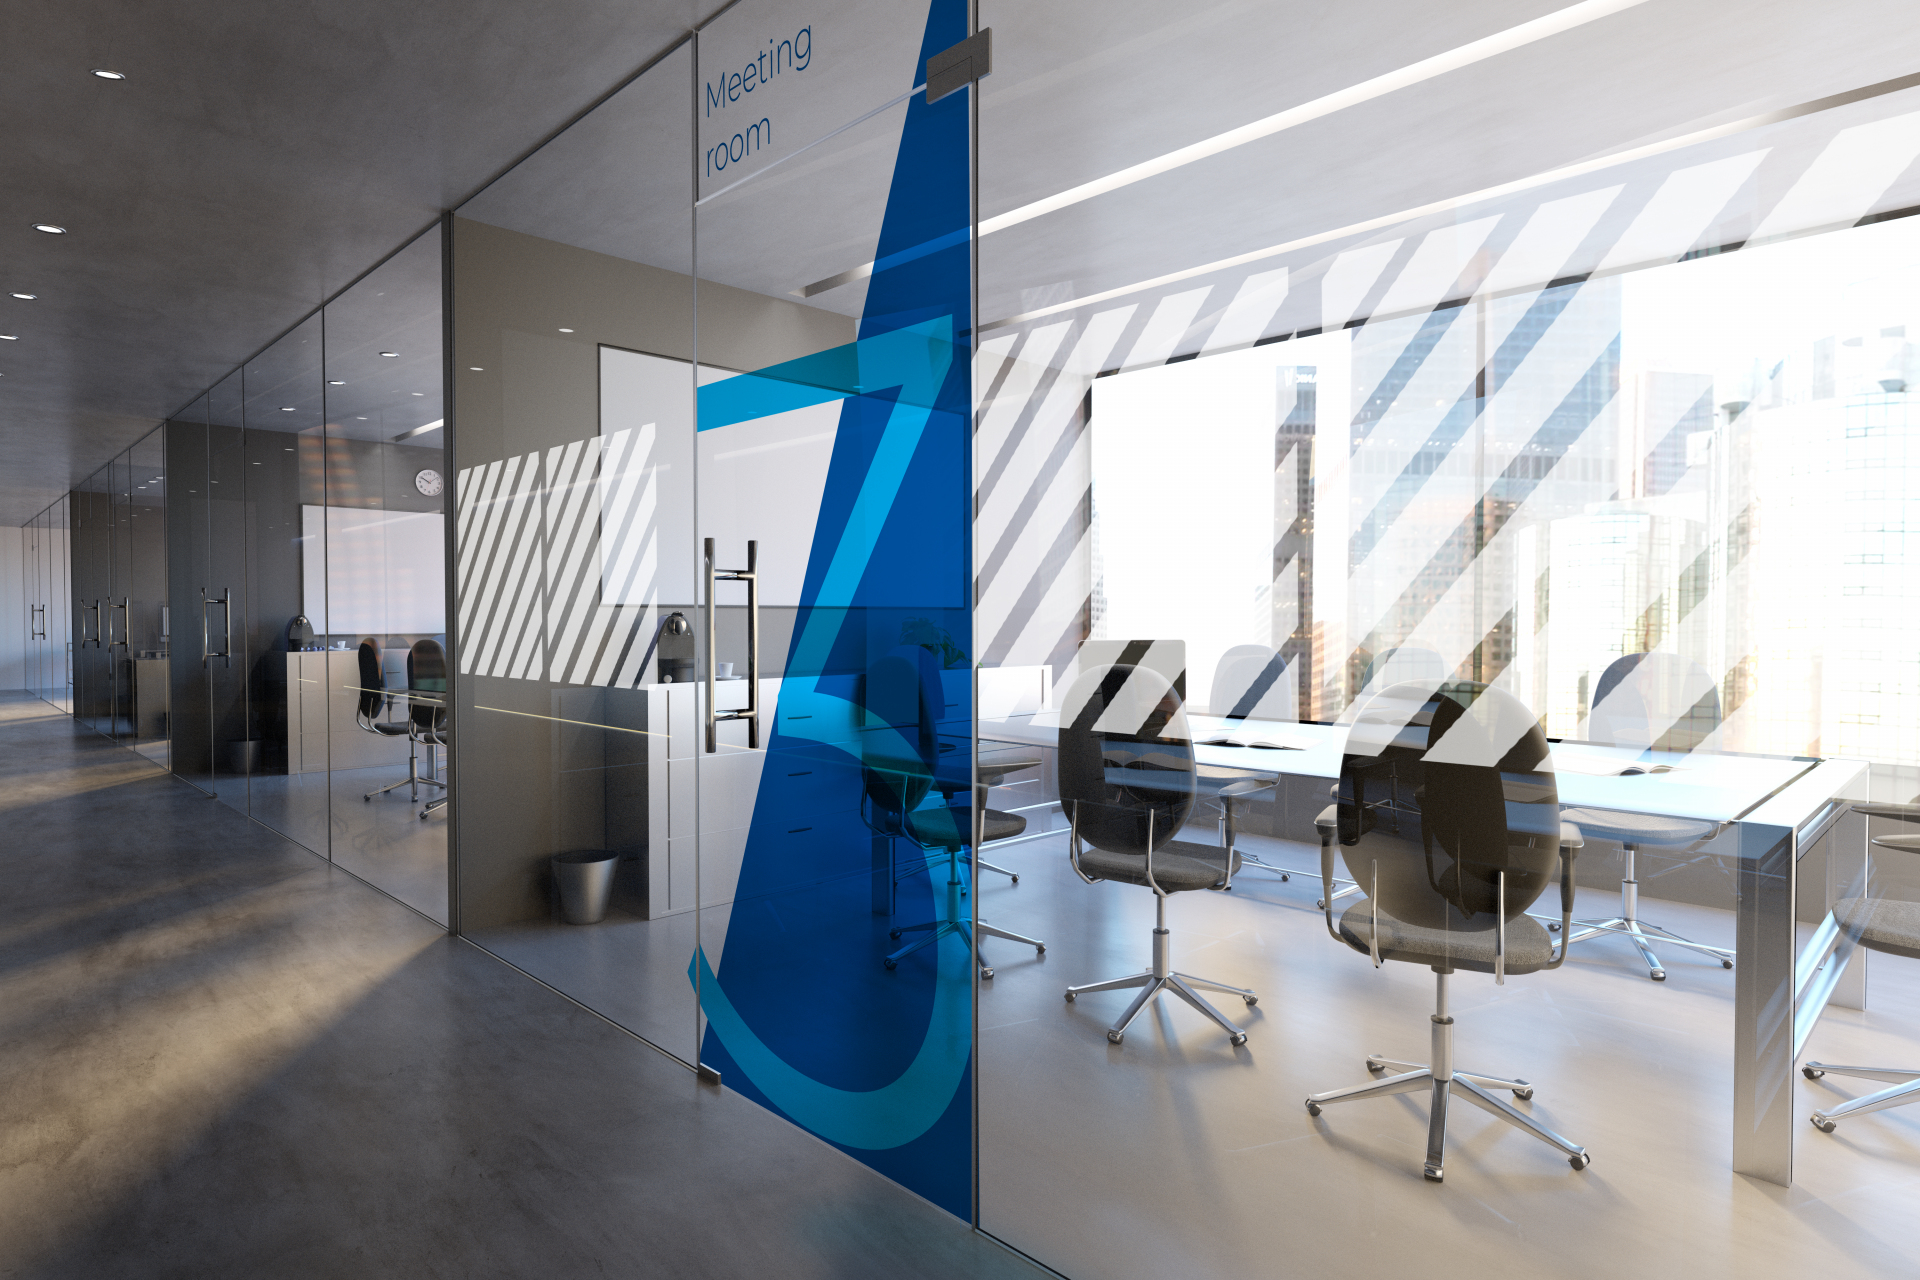 AXA_signage-on-office-interior3